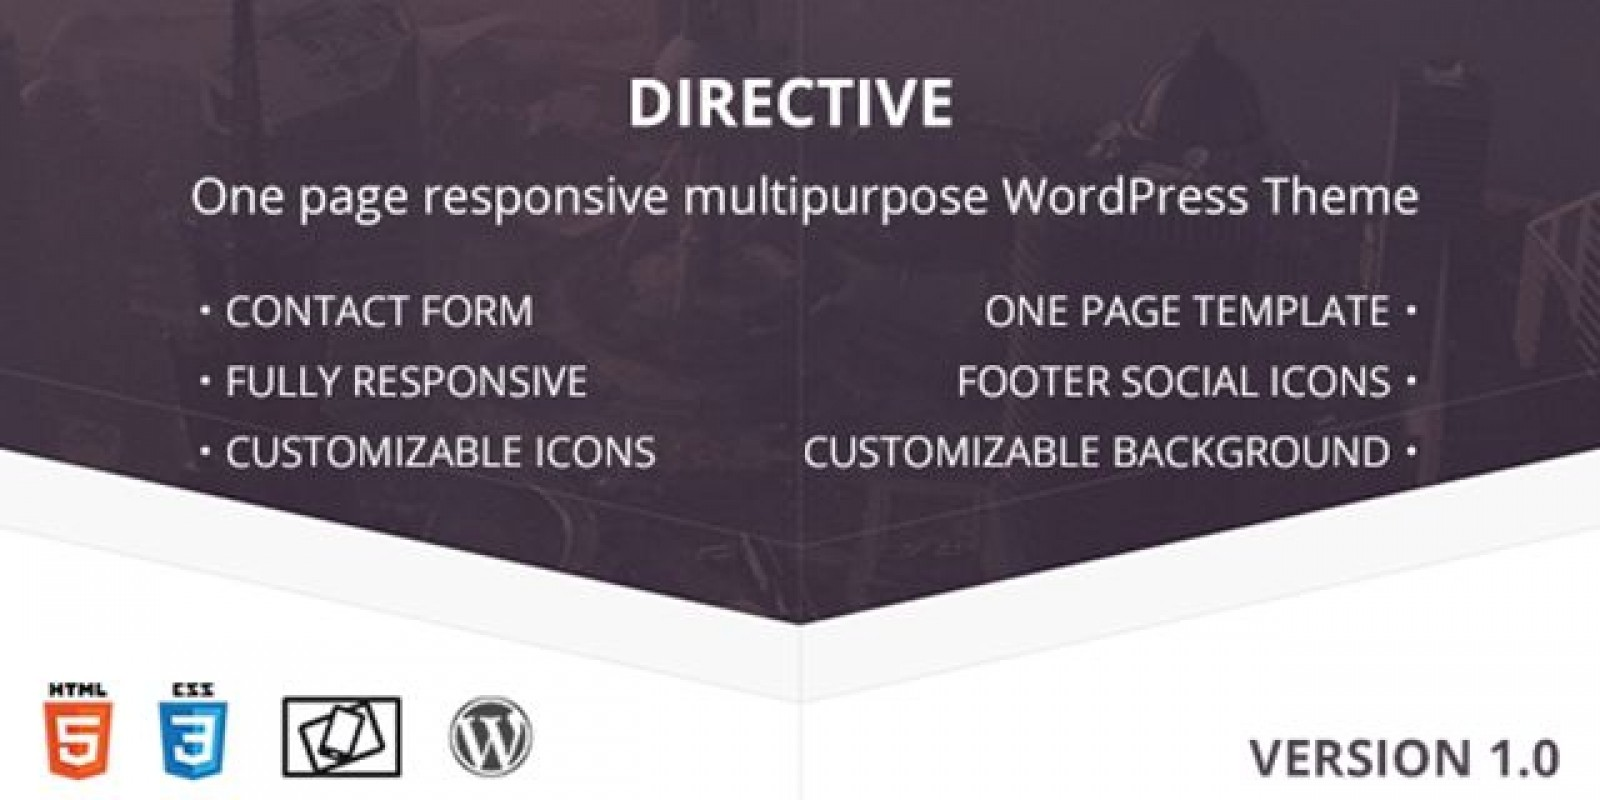 Directive - One Page Responsive WordPress Theme